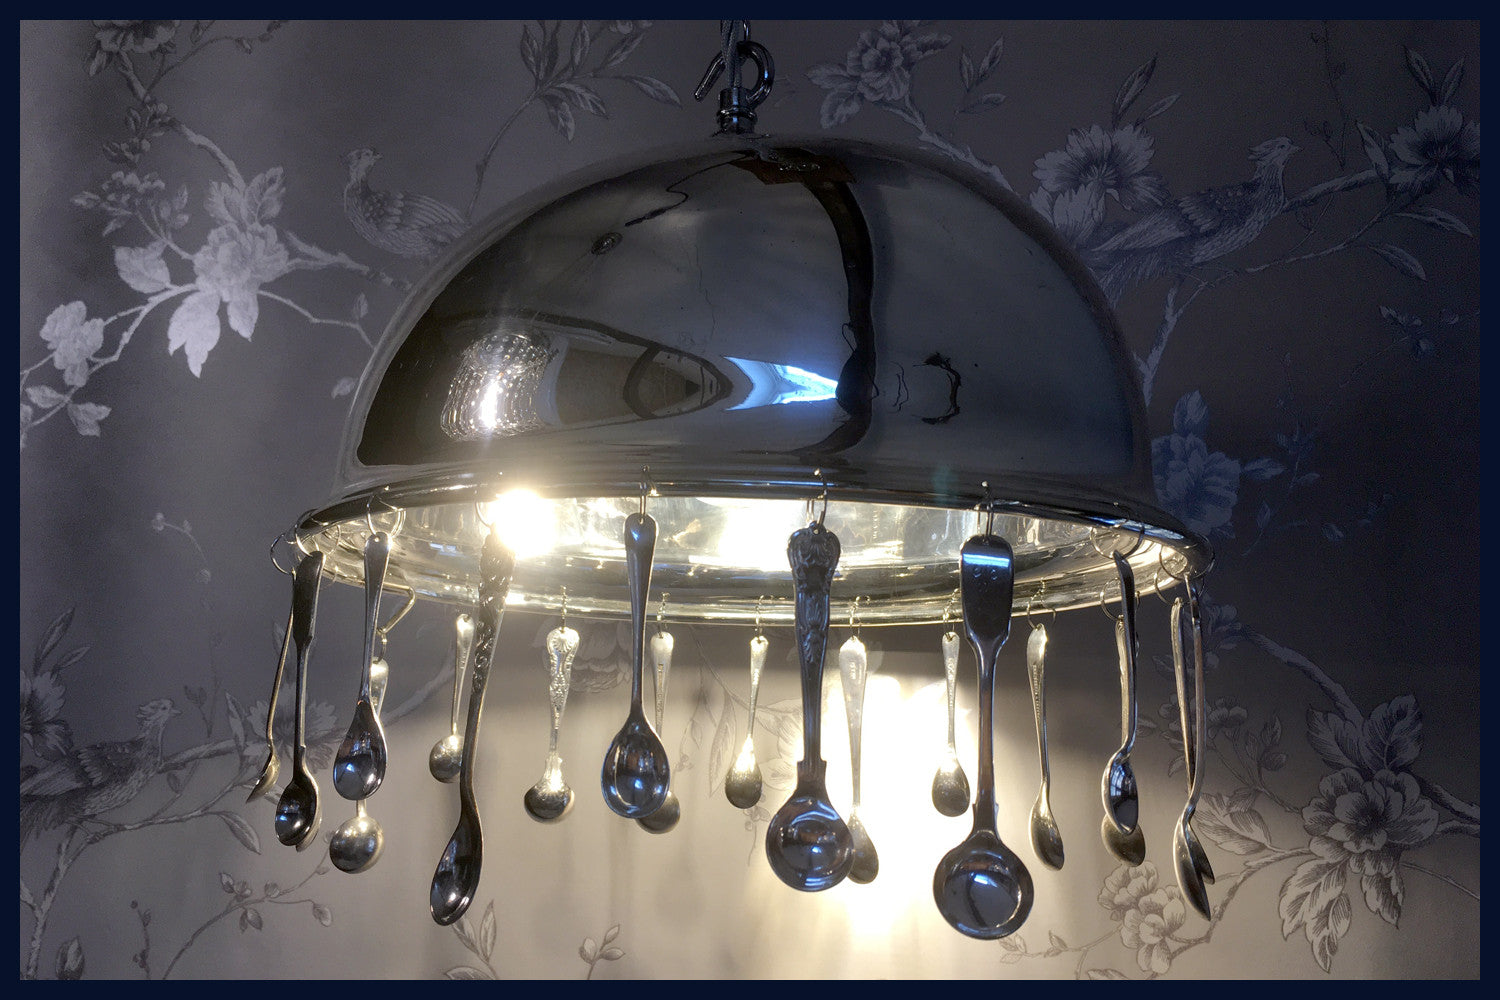 Silver Service Collection:  Antique Silver-Plated Food Dome/Cloche Chandelier with Antique Salt & Mustard Spoons - Grace (92)